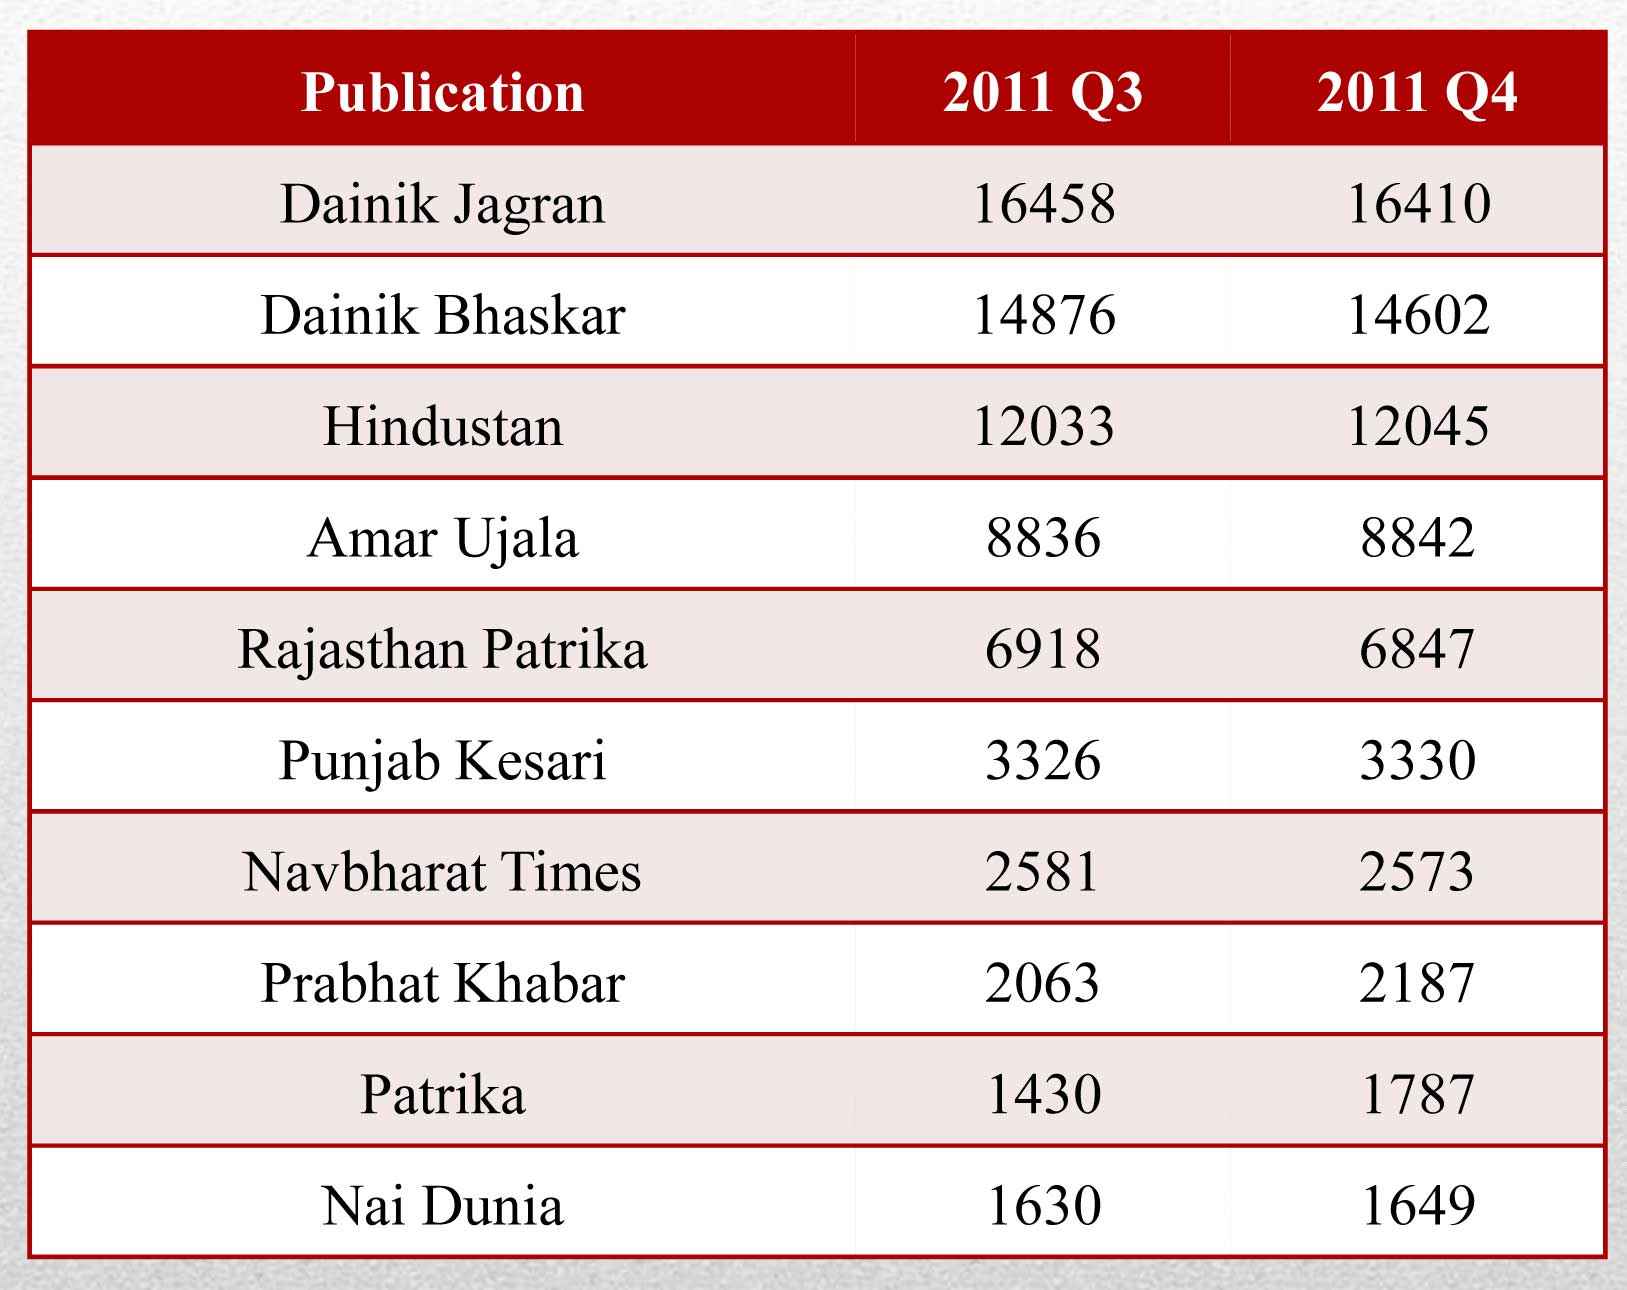 Irs q4 2011 most publications in top 10 register growth for Dainik table